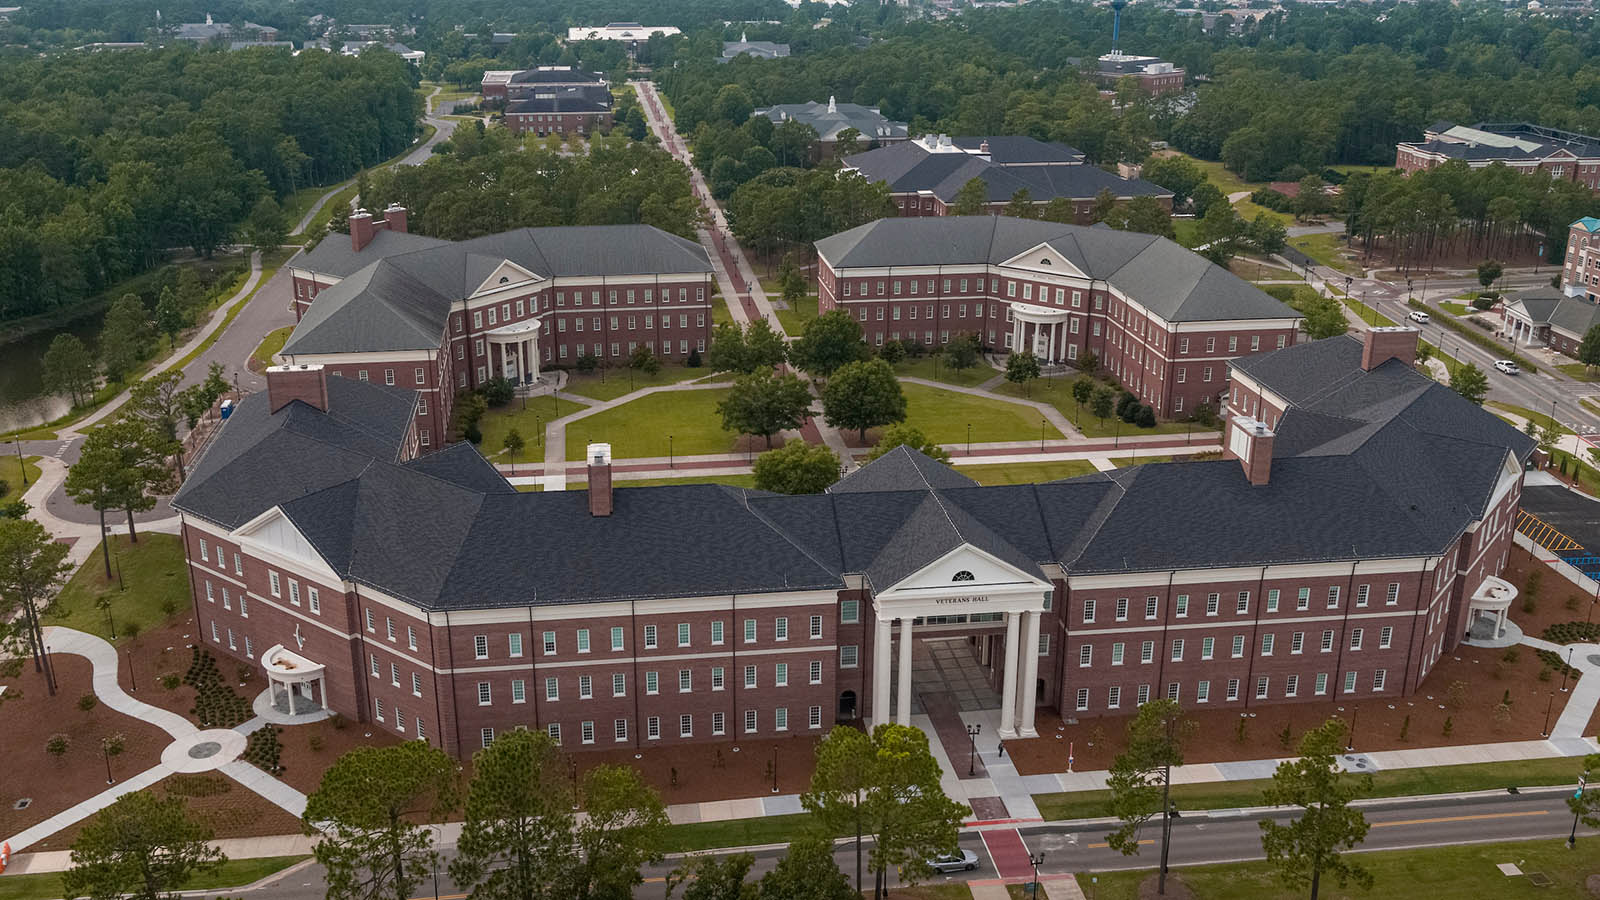 Photo of the quad that includes the Teaching Lab (back left), McNeill Hall (back right) and the newly completed Veterans Hall (foreground). Photo was taken by a drone on the side that faces Walton Drive. Chancellor's Walk runs through the quad and beyond toward the Clock Tower.